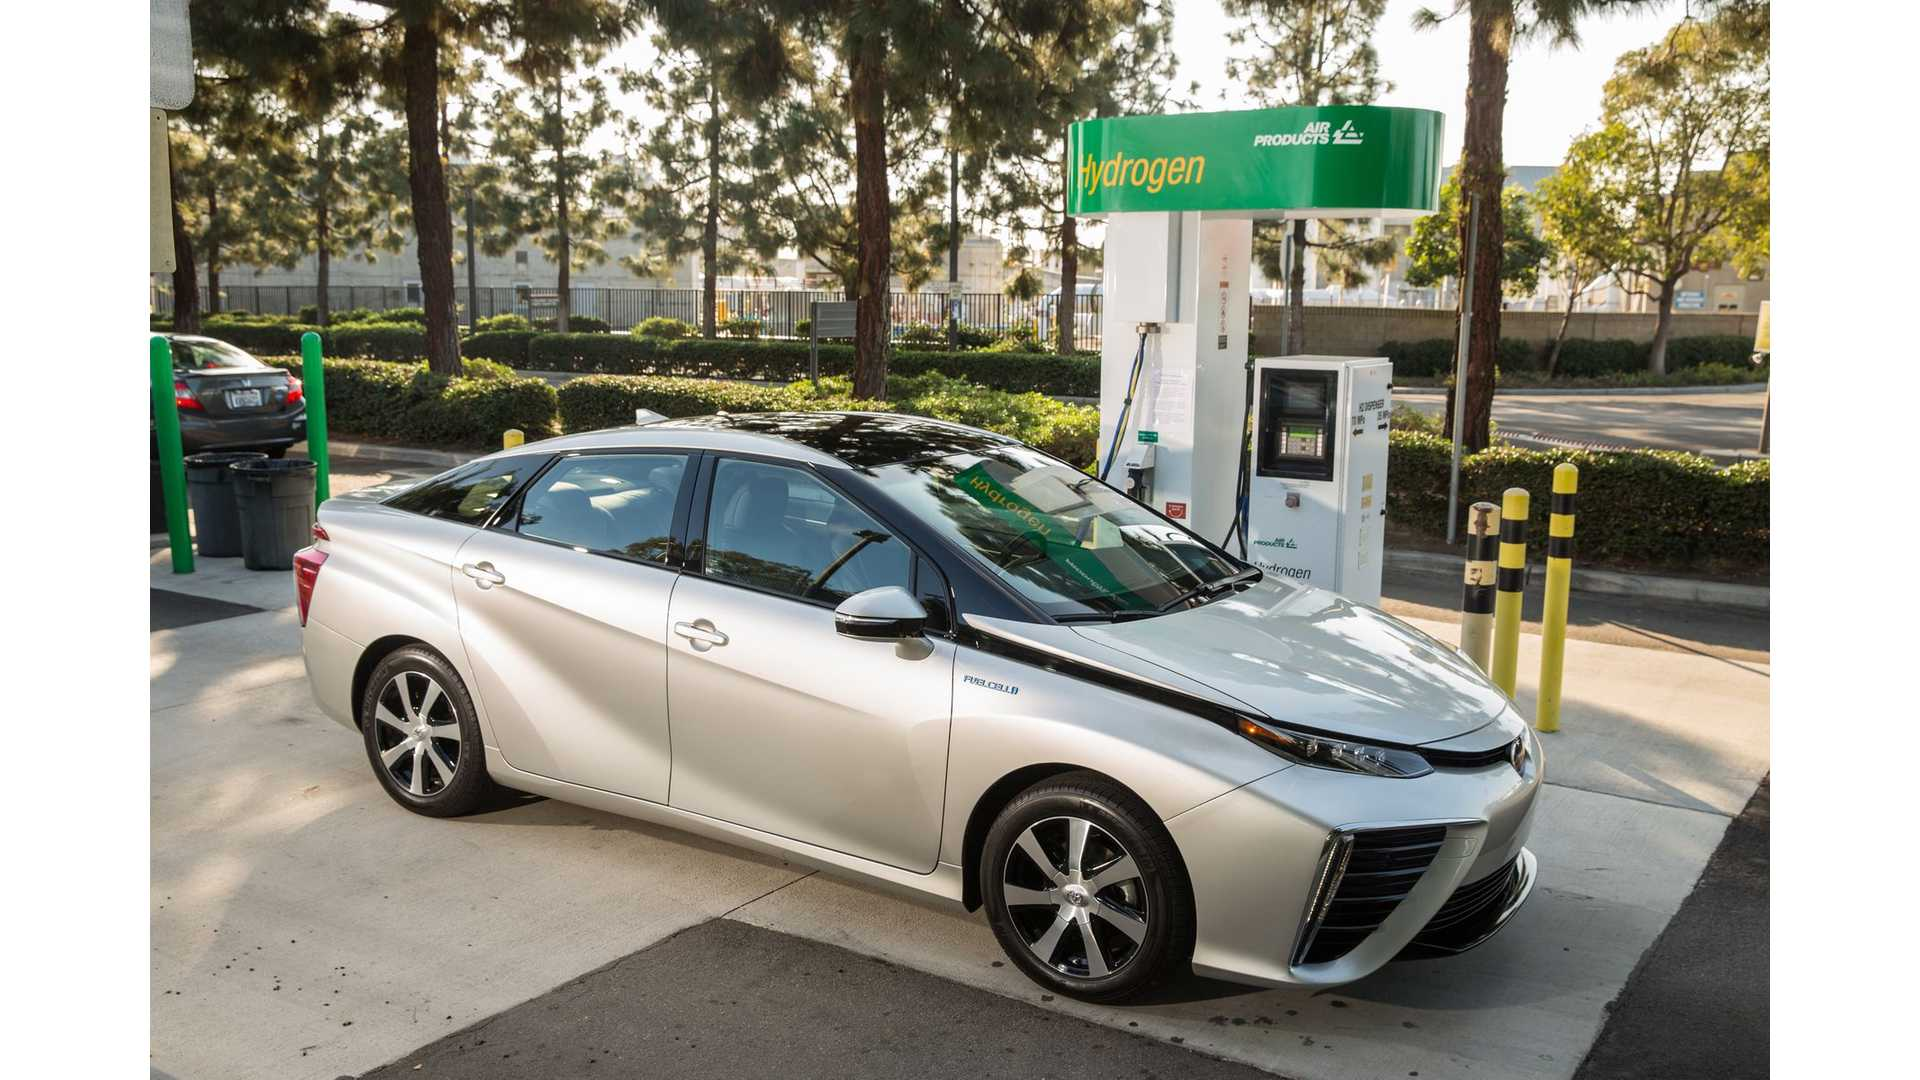 Hydrogen Fuel Cell Car Sales In U S  Just 2,300 In 2018